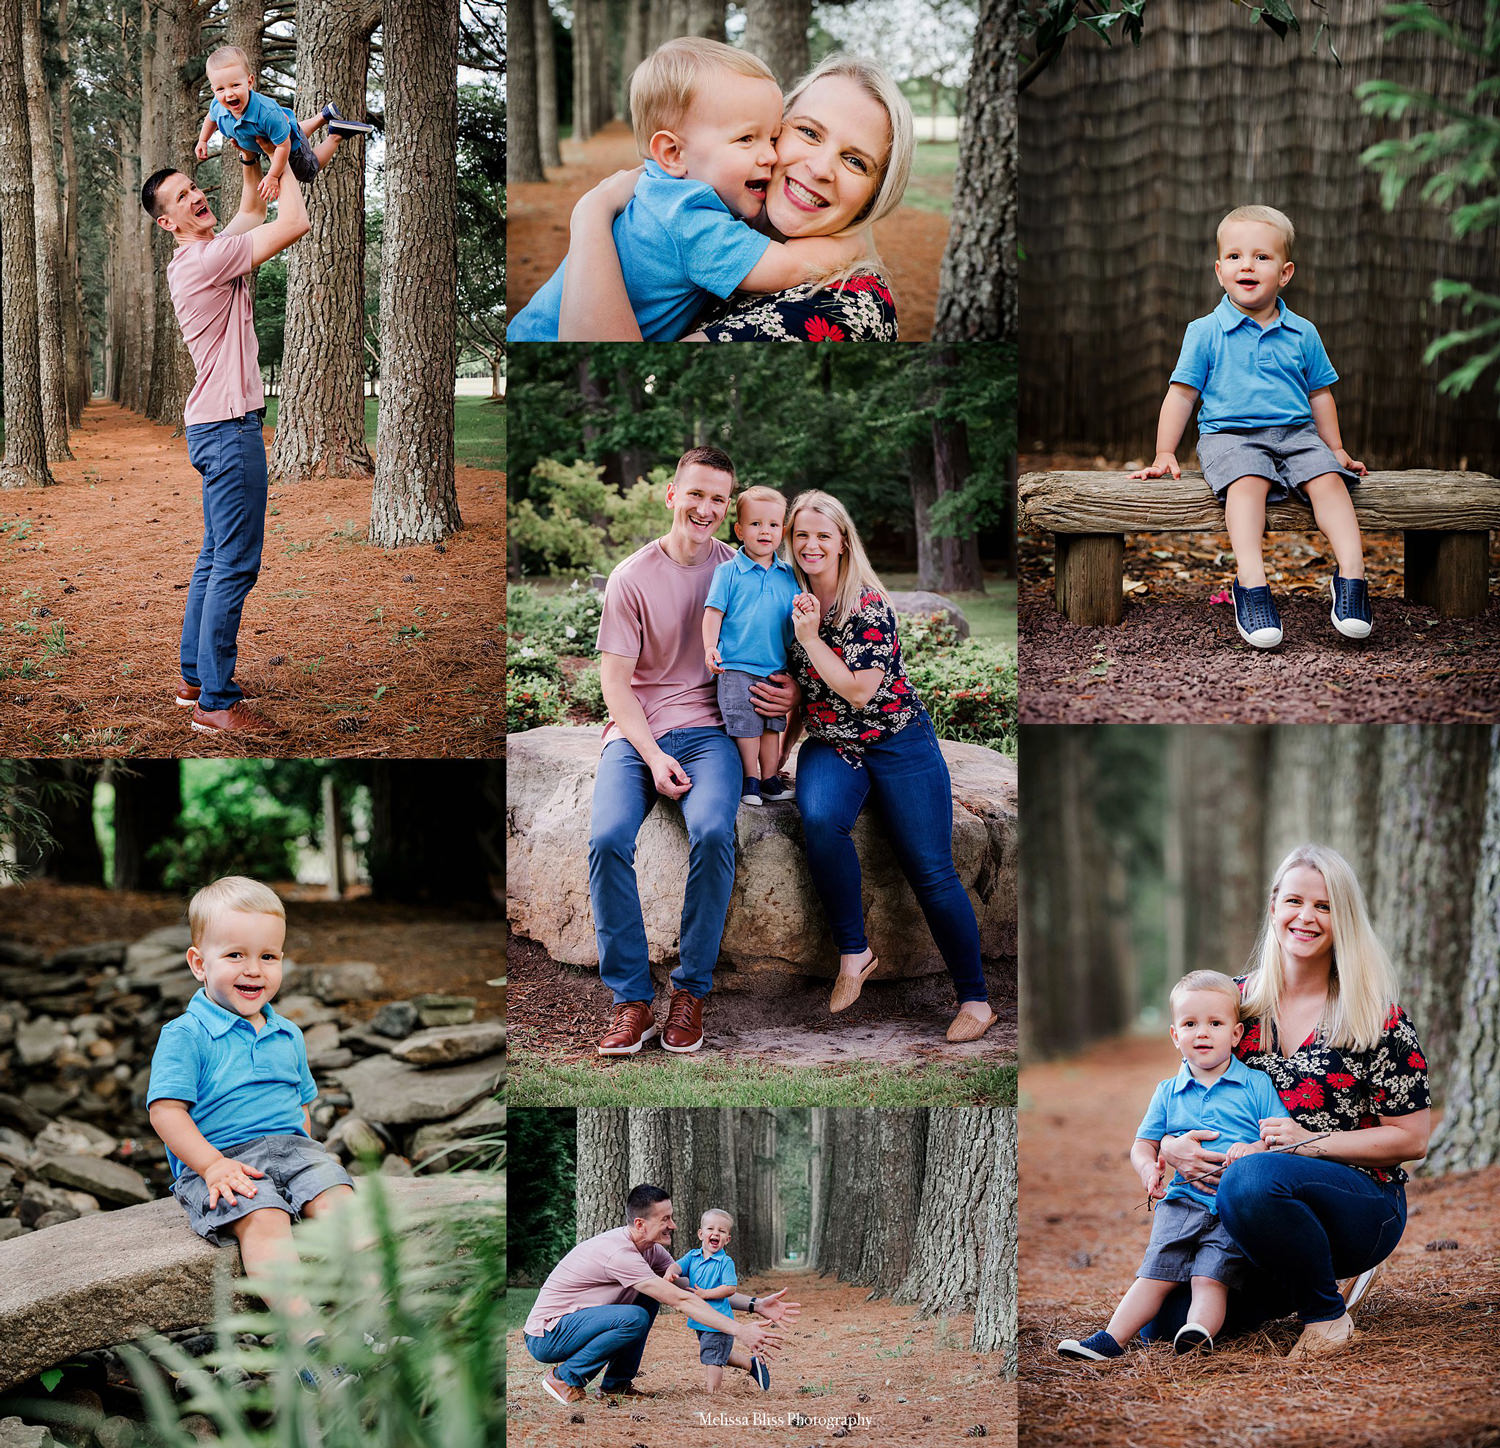 virginia-beach-family-photographer-red-wing-park-mini-session-melissa-bliss-photography.jpg